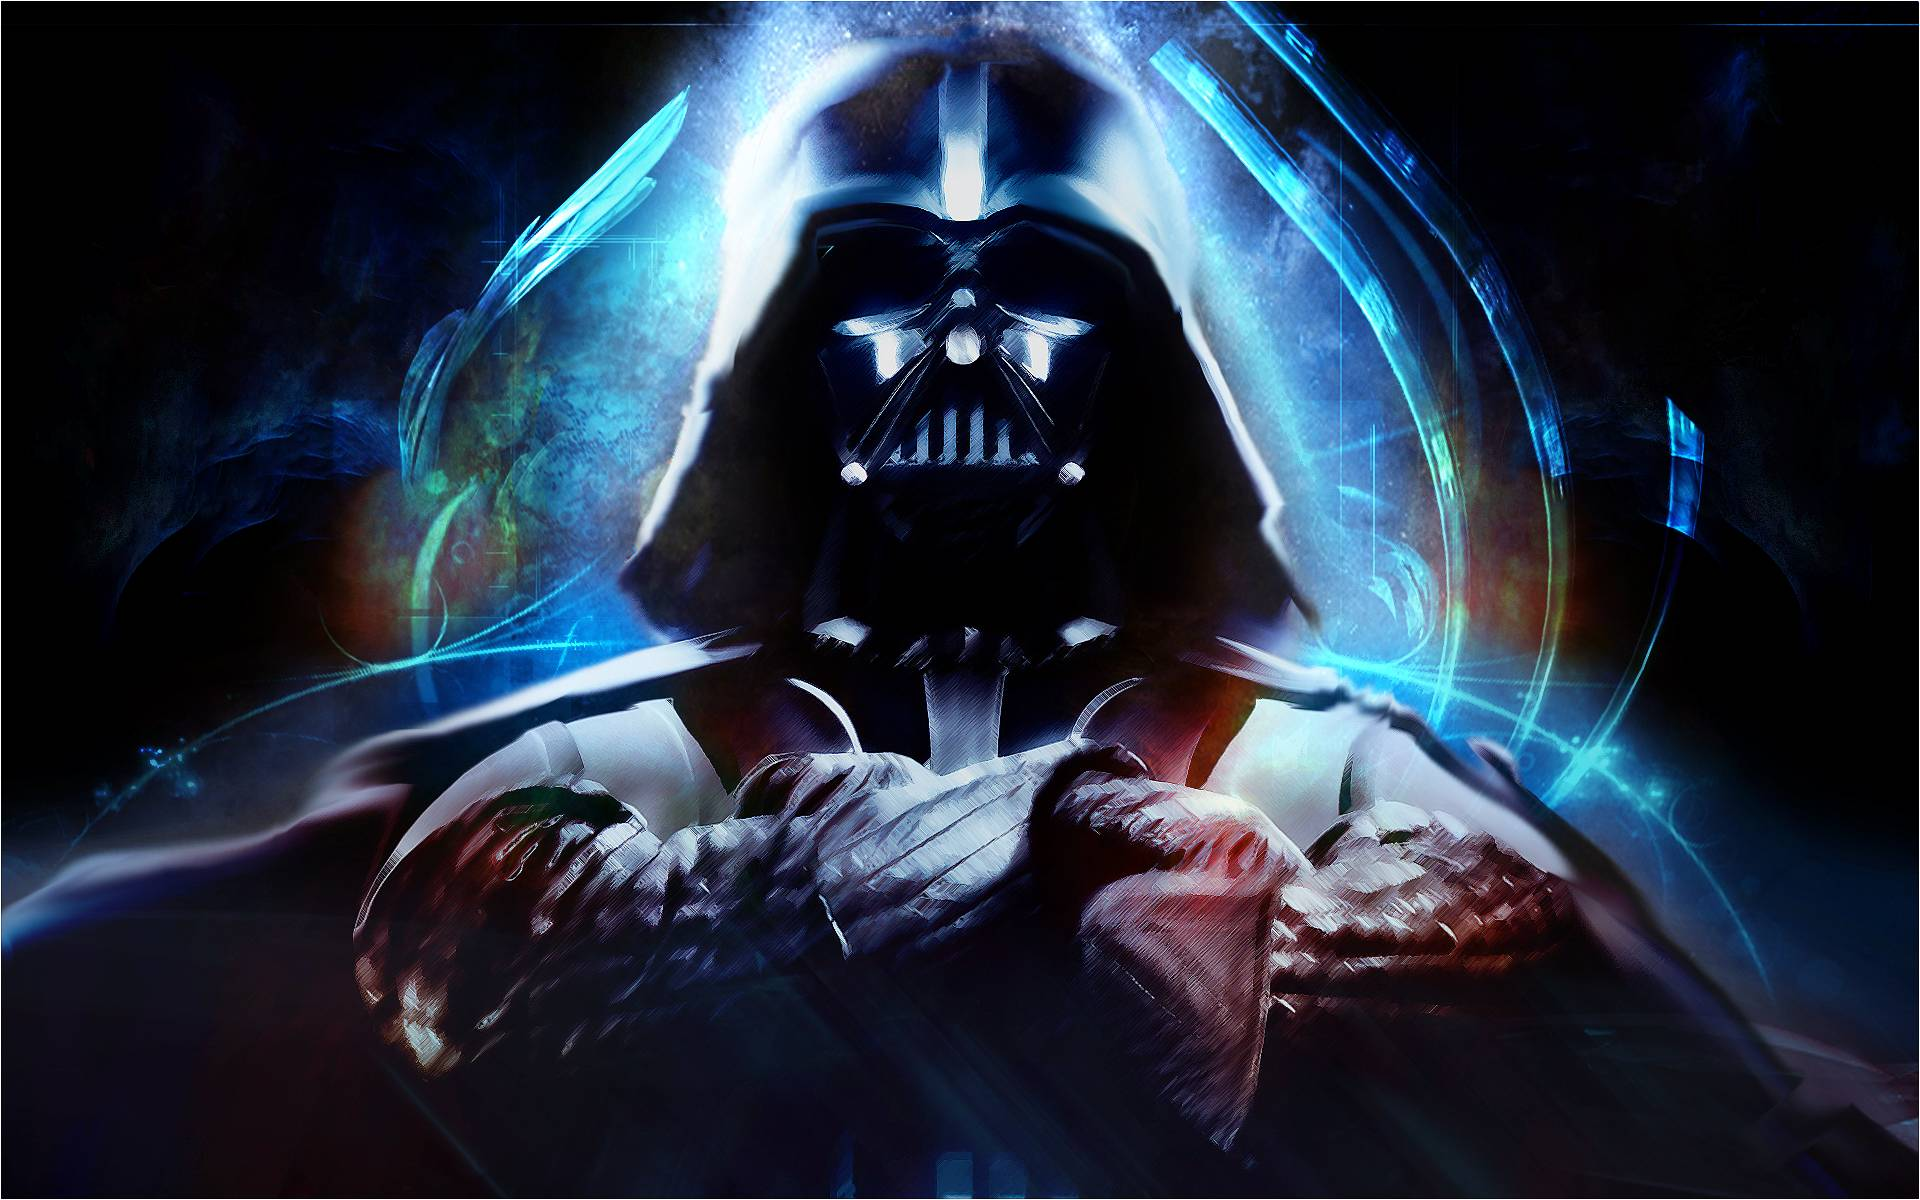 Star Wars Darth Vader Wallpapers 1920x1200